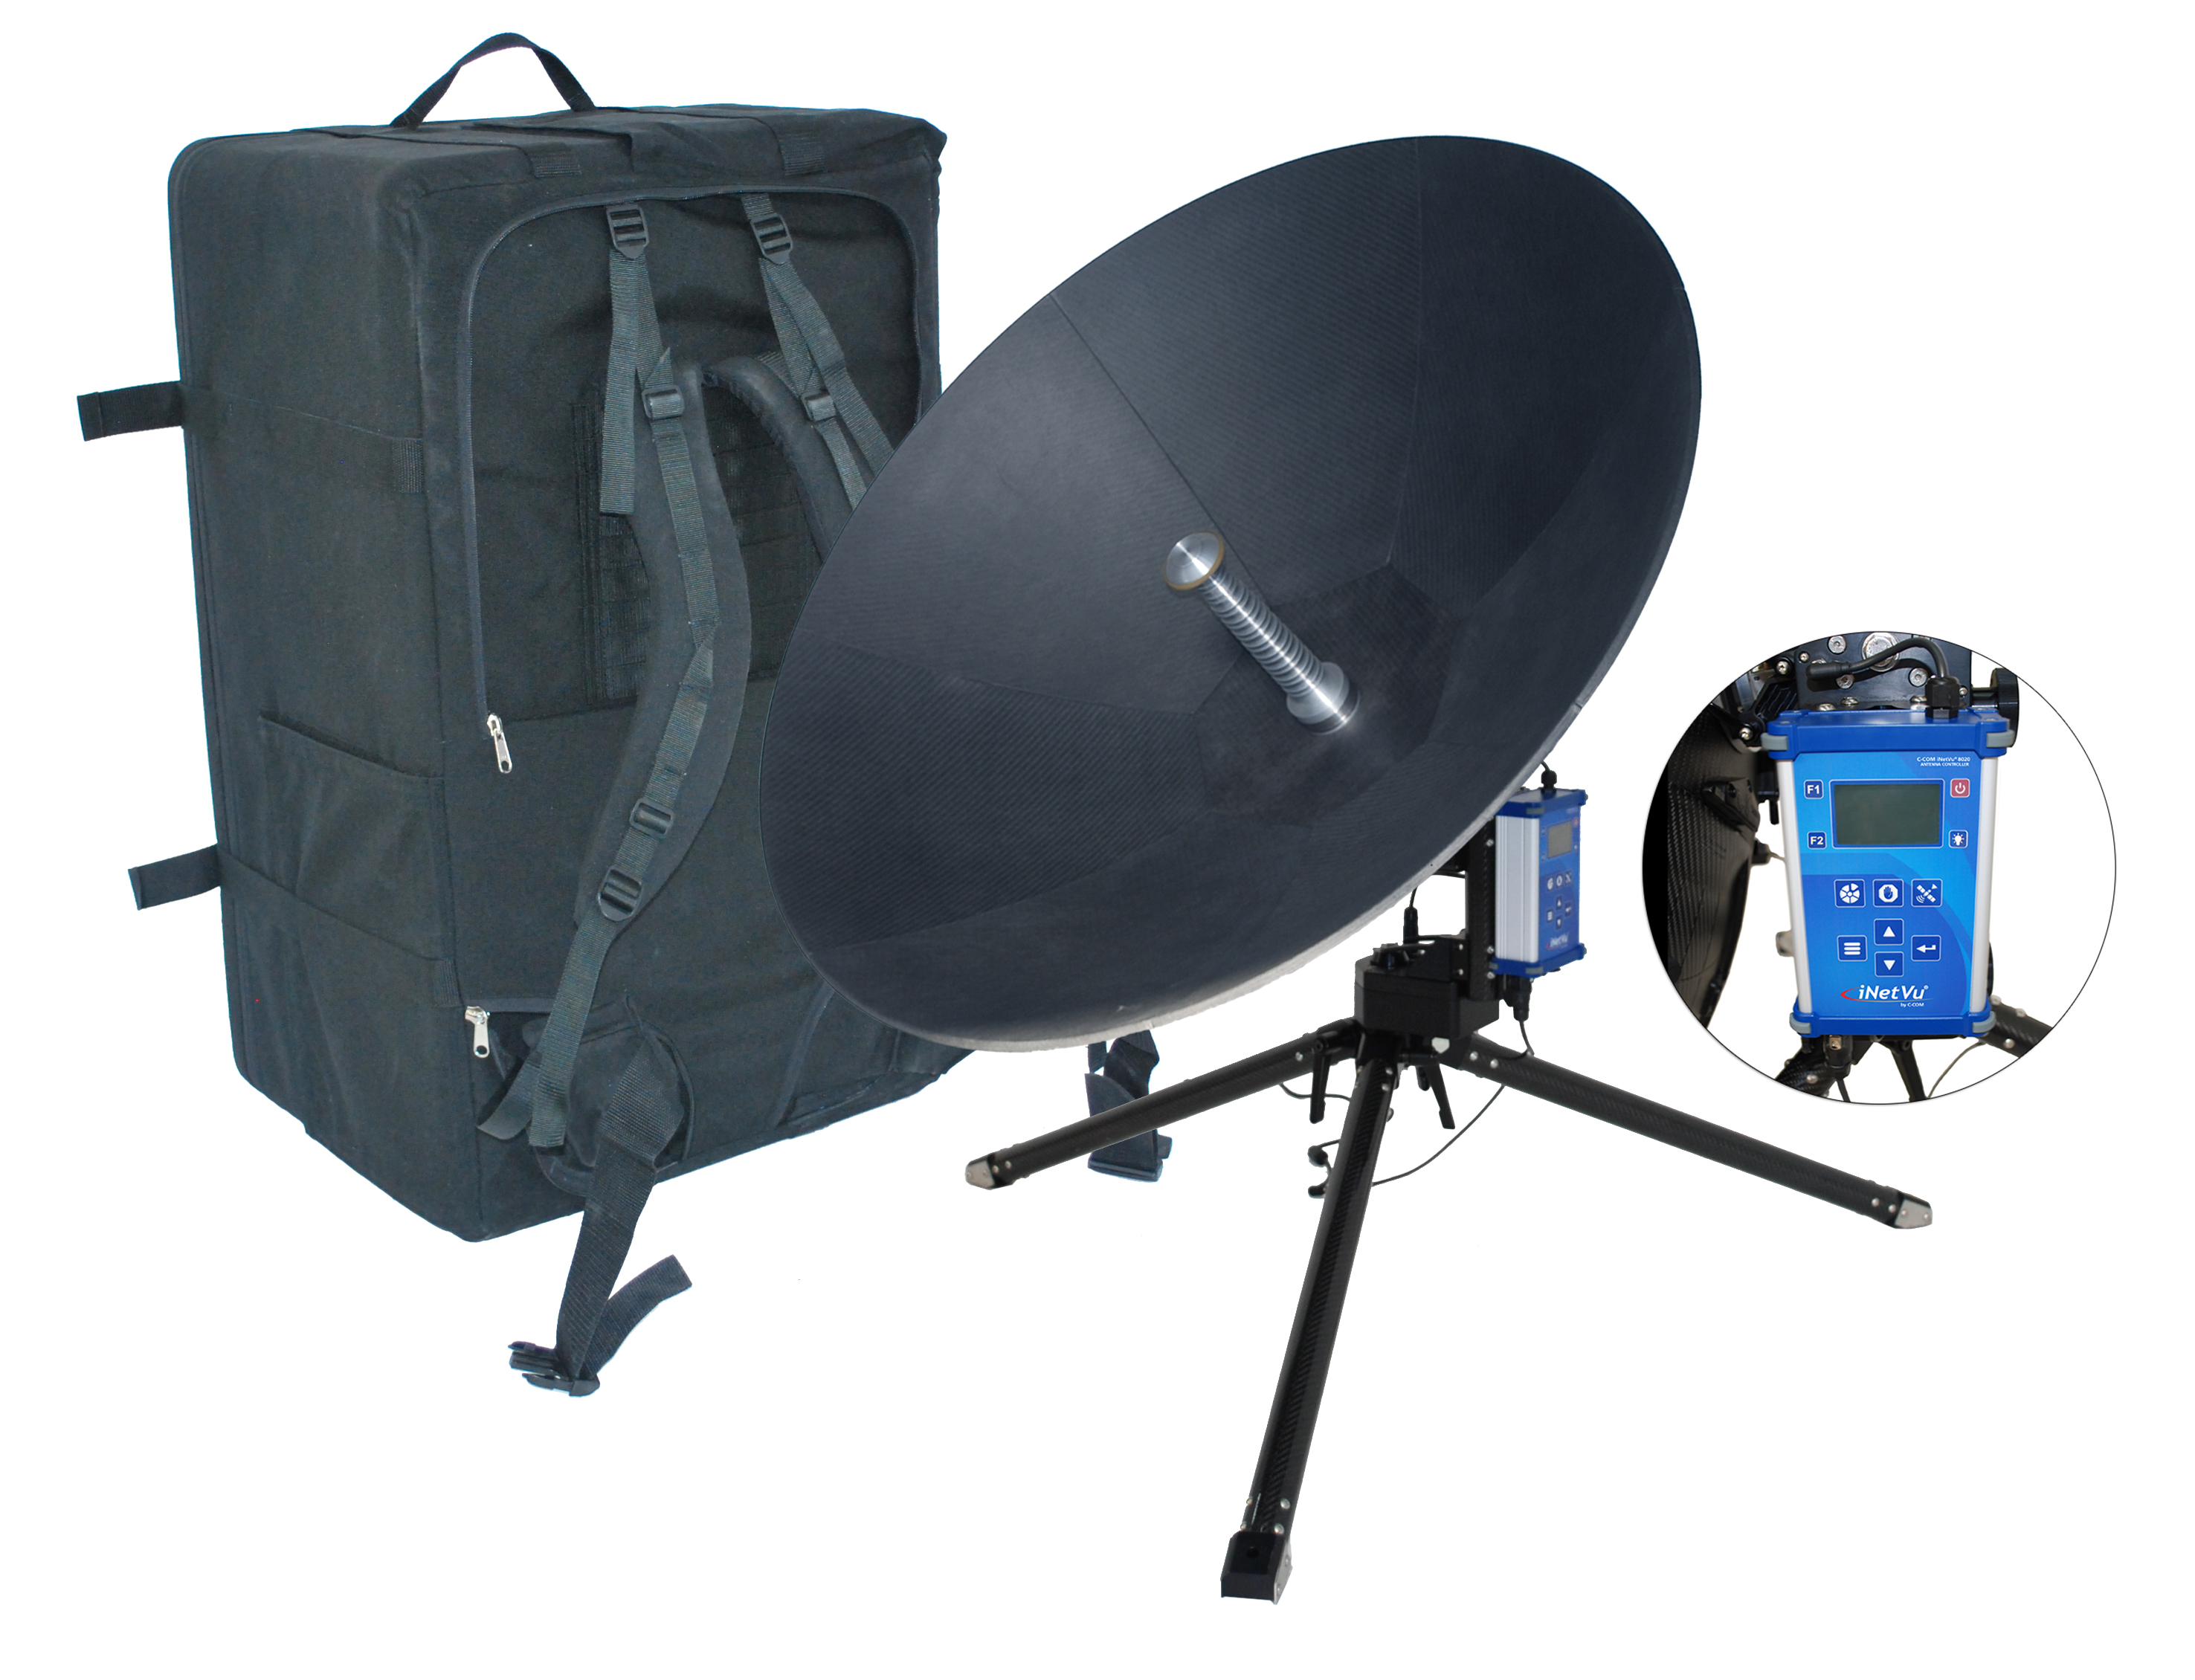 C-COM COMPLETES DELIVERY OF $3.4 MILLION MANPACK ANTENNA ORDER